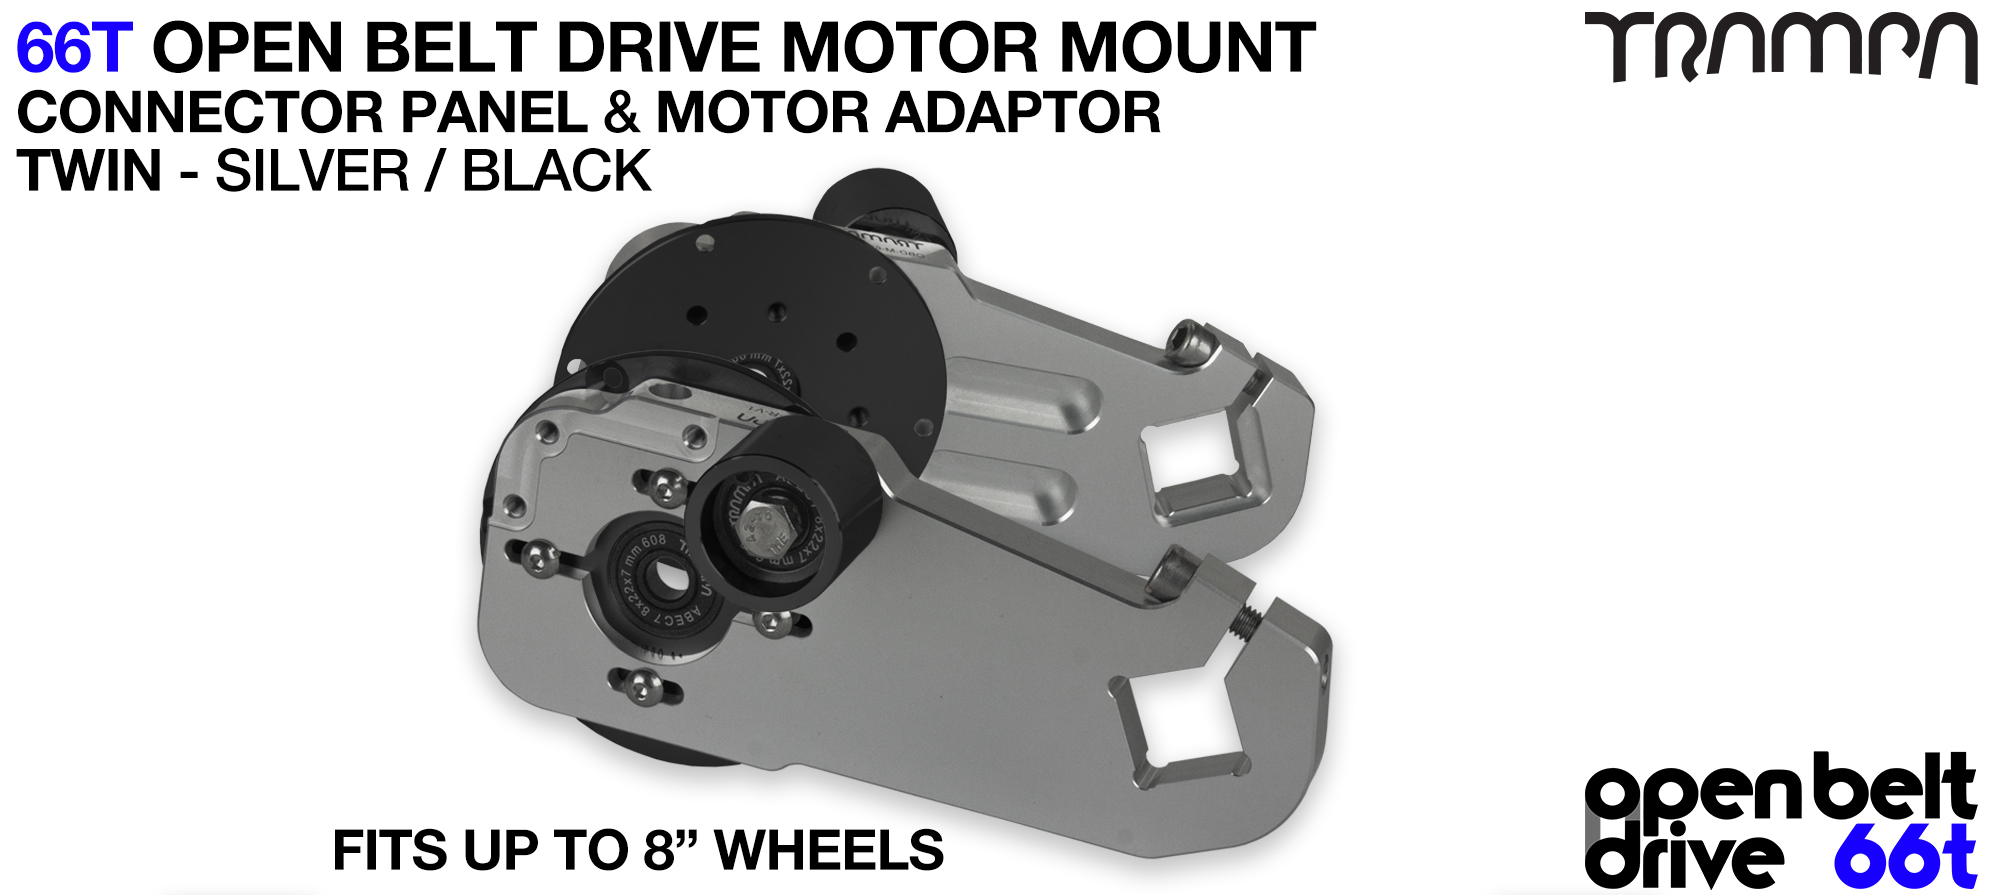 66T OPEN BELT DRIVE Motor Mount & Motor Adaptor - TWIN SILVER